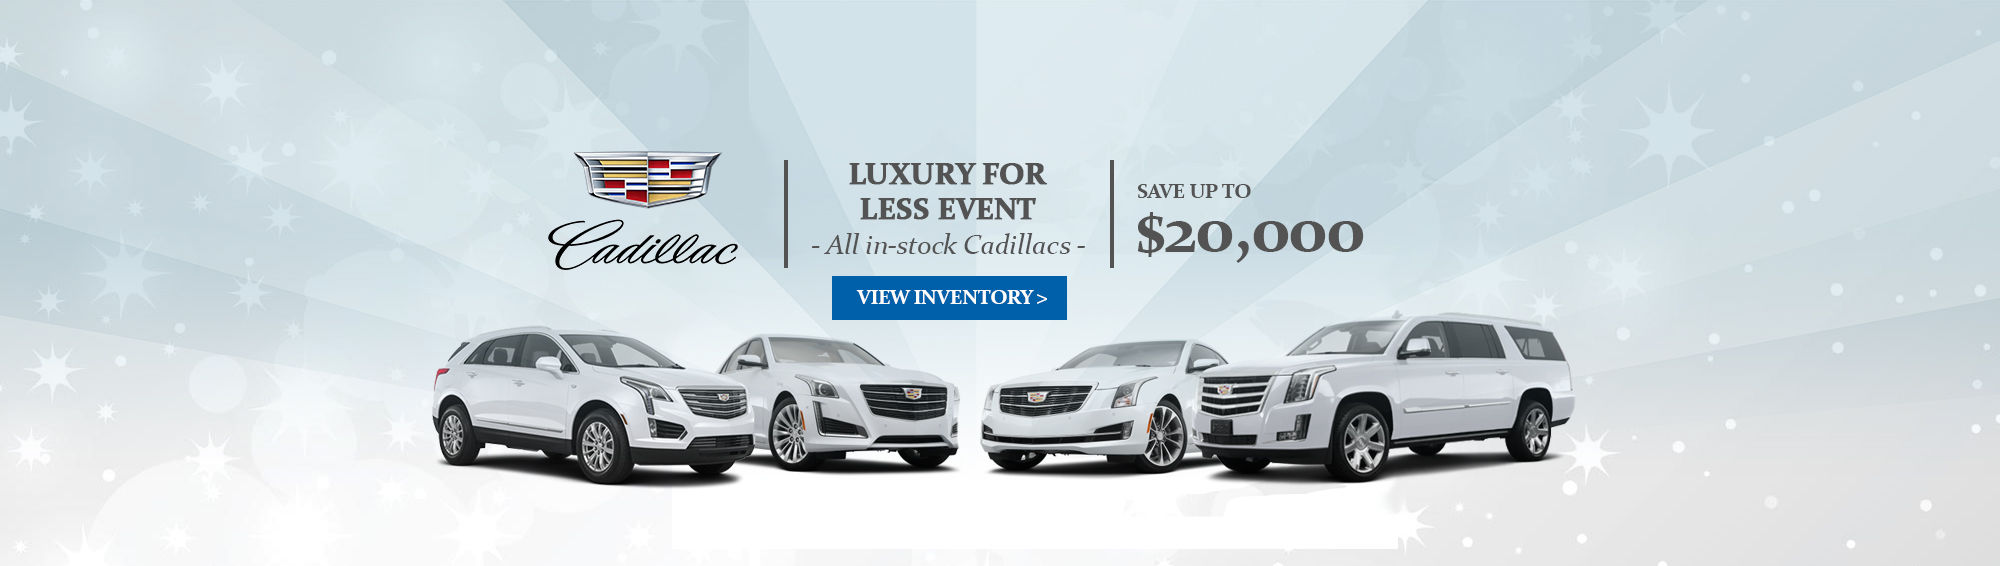 Luxury For Less Event